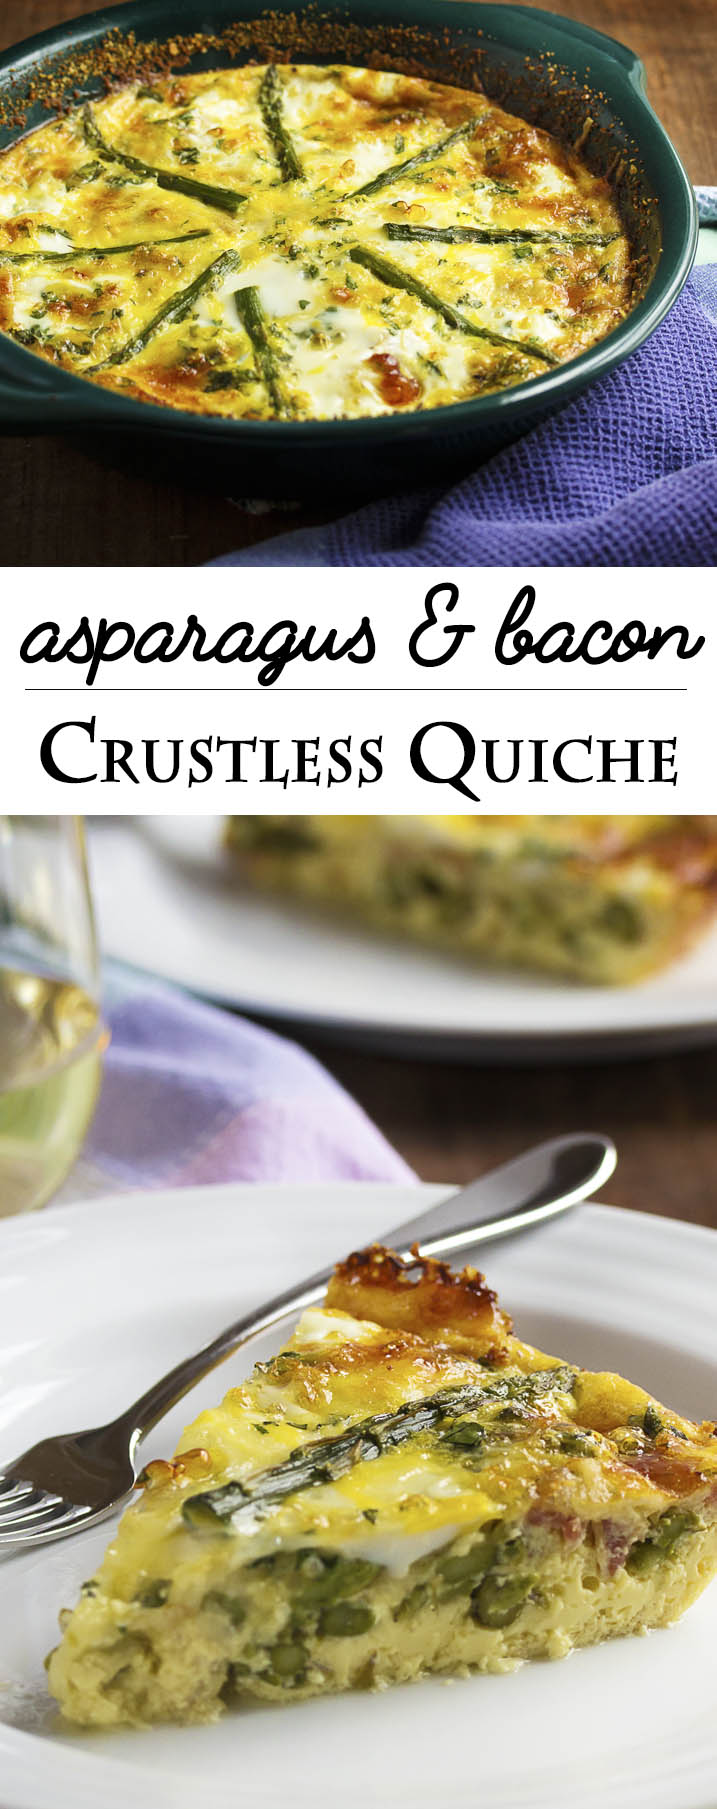 Asparagus and Bacon Crustless Quiche - This asparagus crustless quiche is full of asparagus and bacon and makes a great brunch dish or part of a spring-time lunch. | justalittlebitofbacon.com